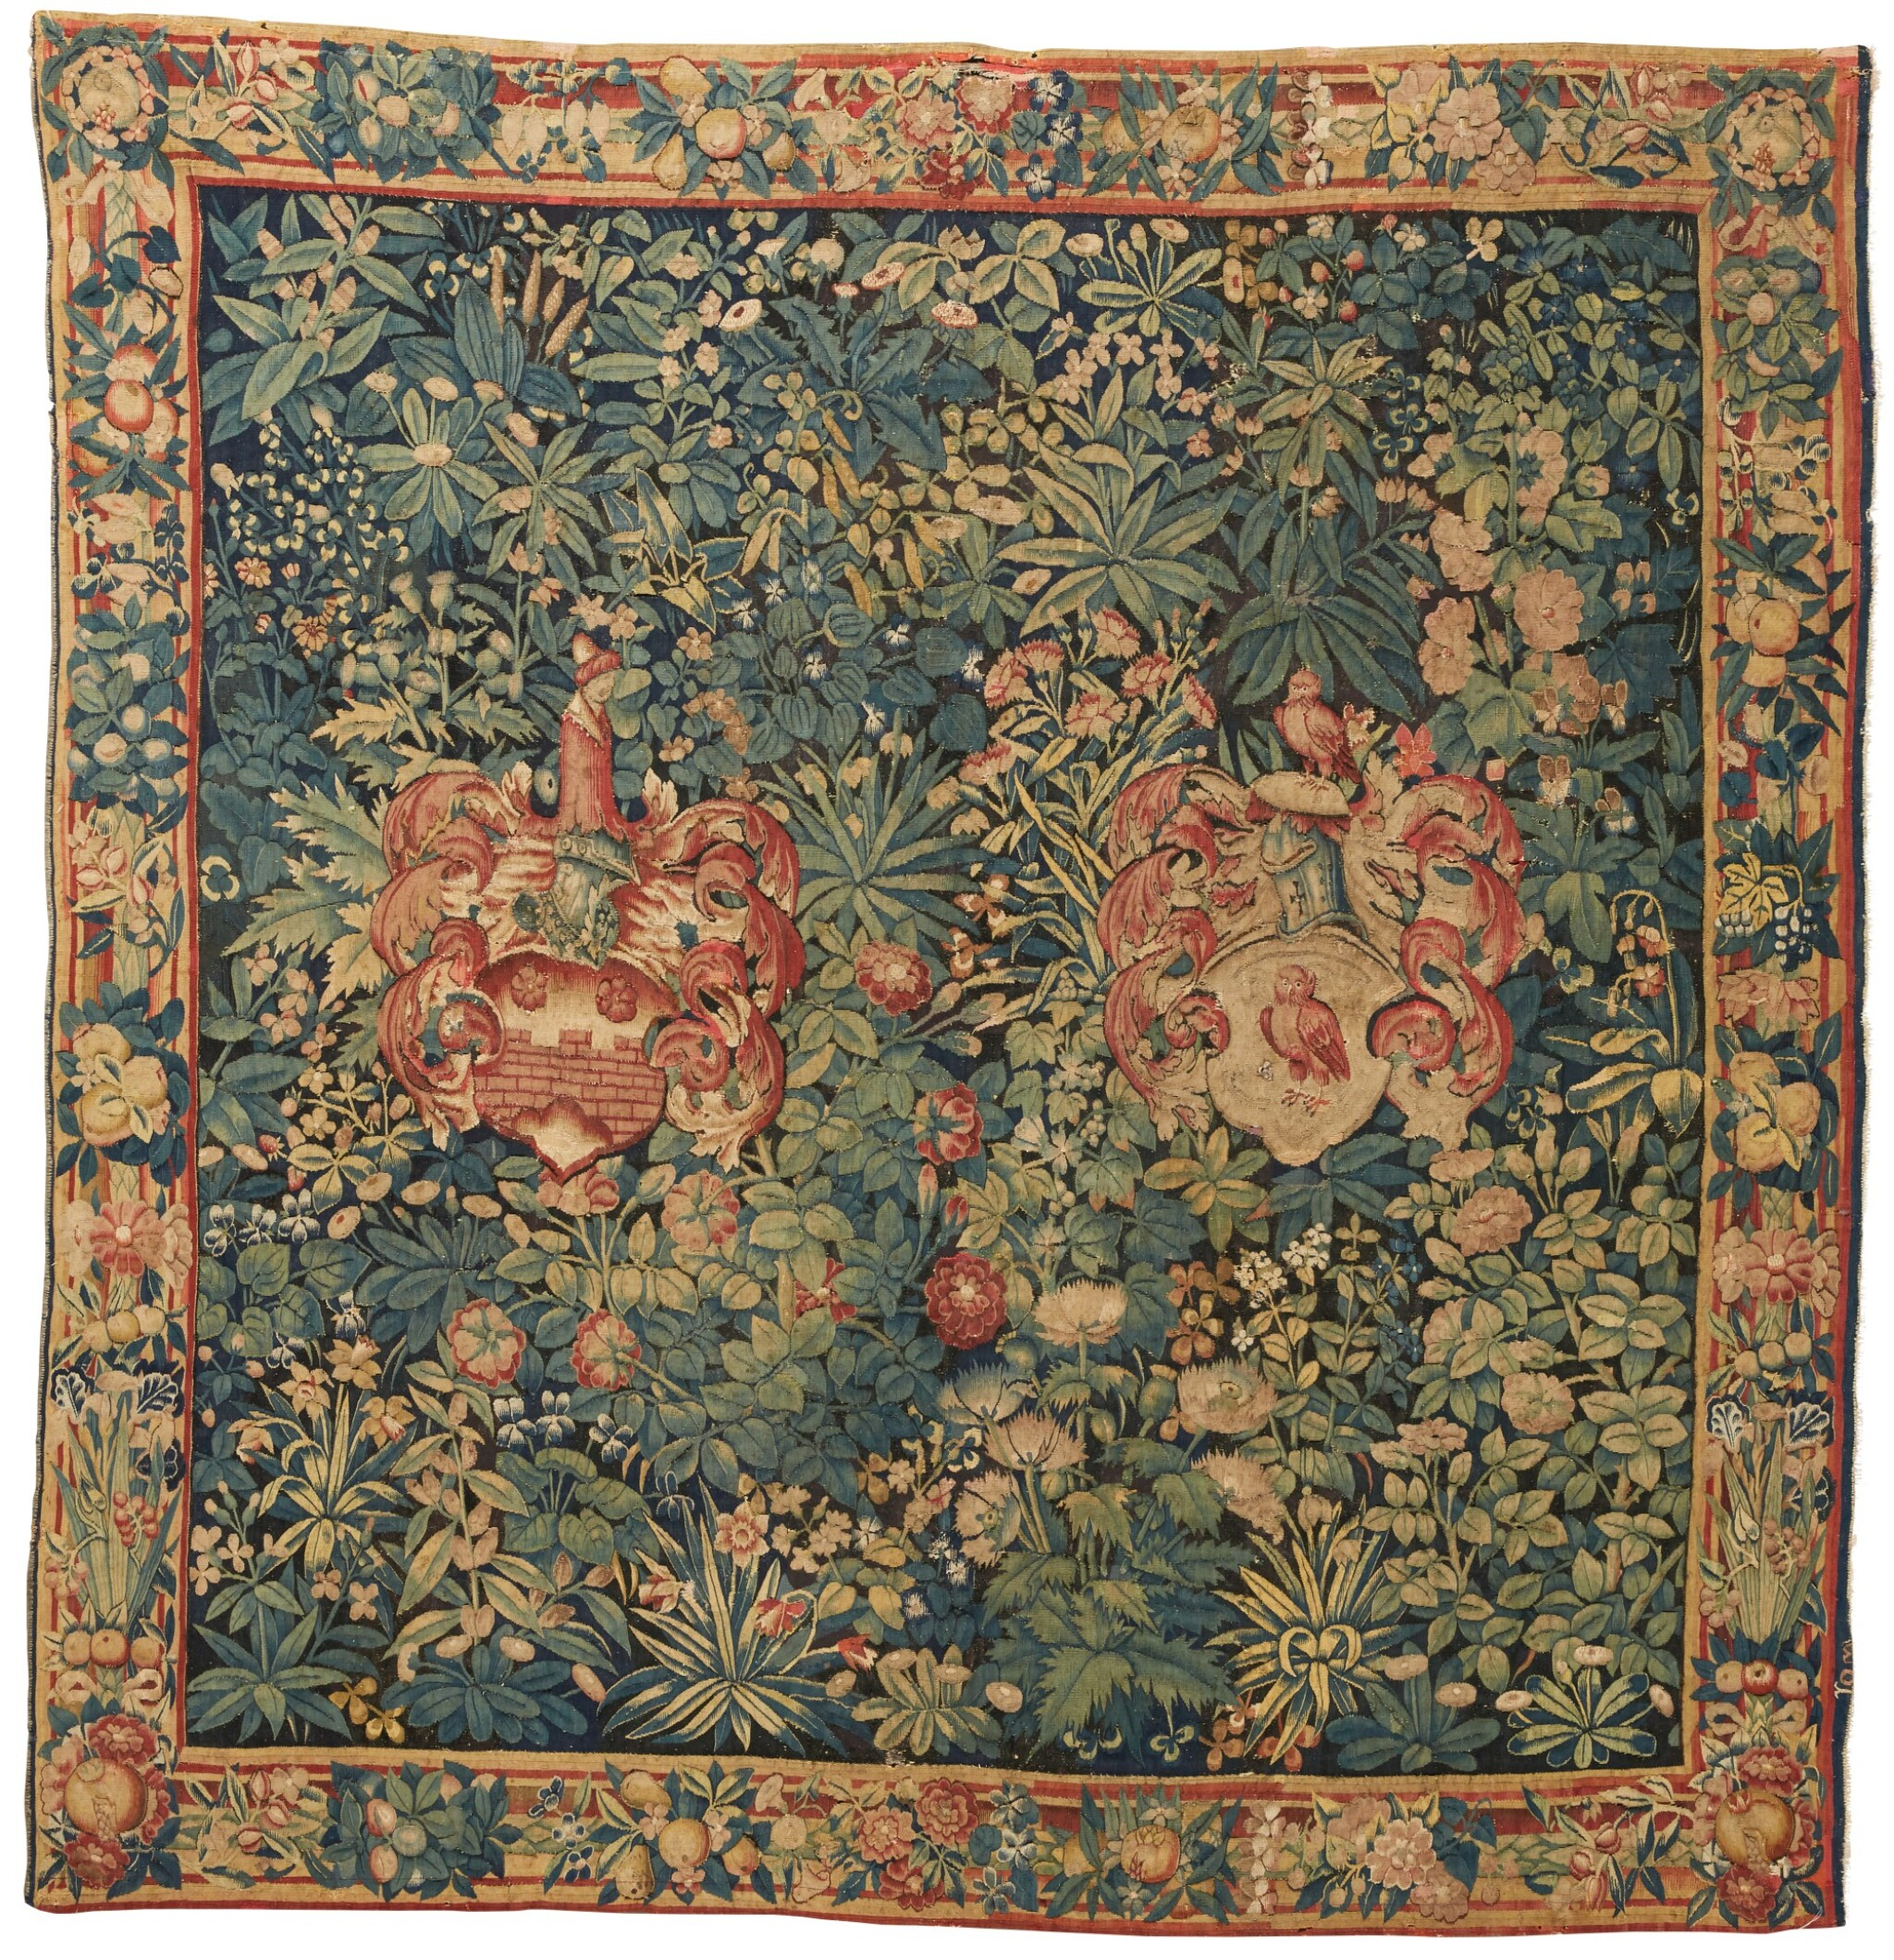 View full screen - View 1 of Lot 87. A Flemish Armorial and Millefleurs Tapestry, Southern Netherlands, first half 16th century.